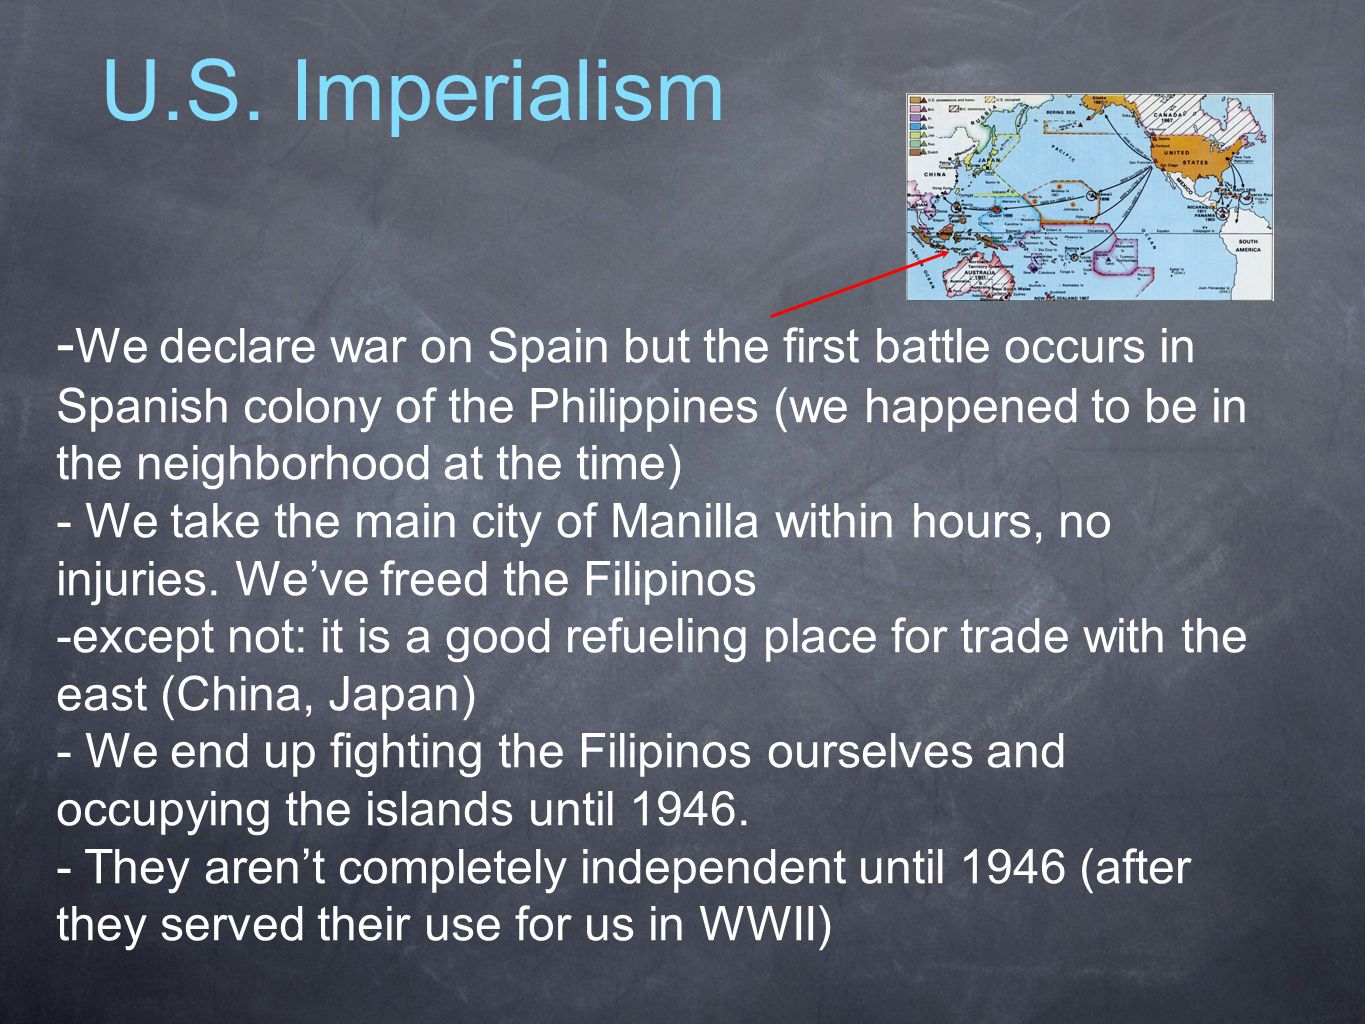 U.S. Imperialism - We declare war on Spain but the first battle occurs in Spanish colony of the Philippines (we happened to be in the neighborhood at